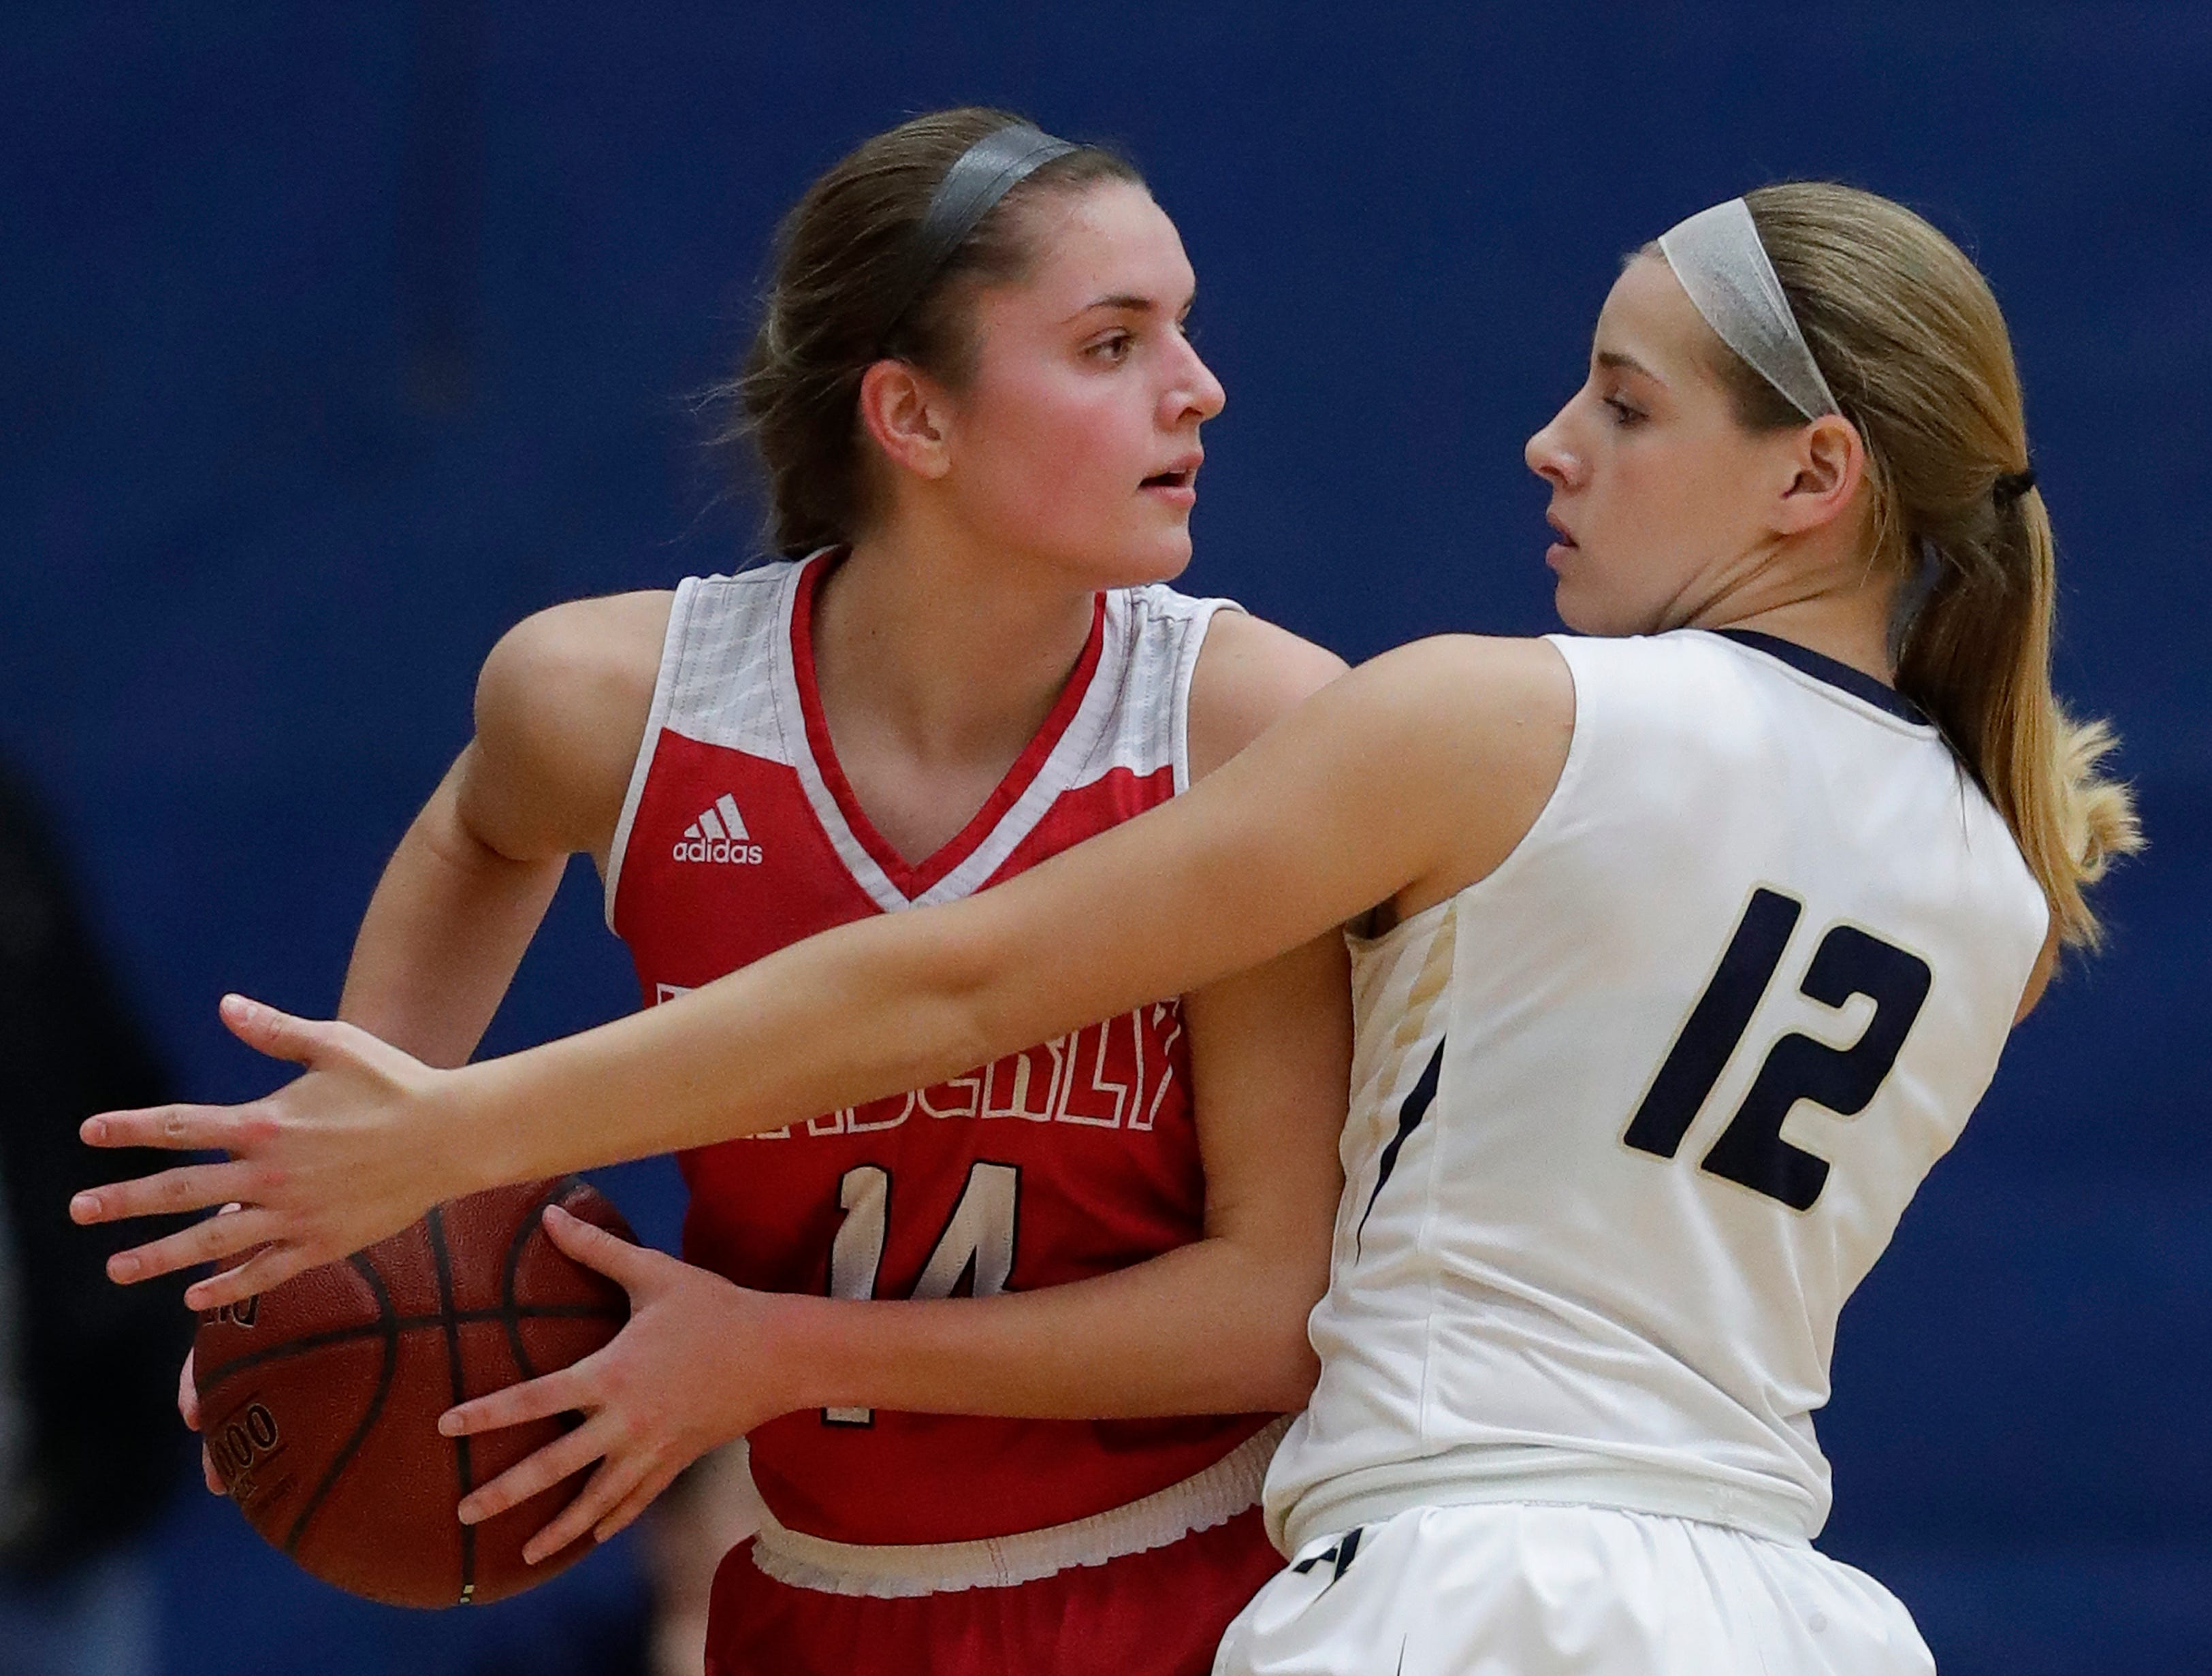 Appleton North High School's Teagan Prusinski (12) defends against Kimberly High School's Taylor Hietpas (14) during their girls basketball game Tuesday, January 8, 2019, in Appleton, Wis. 